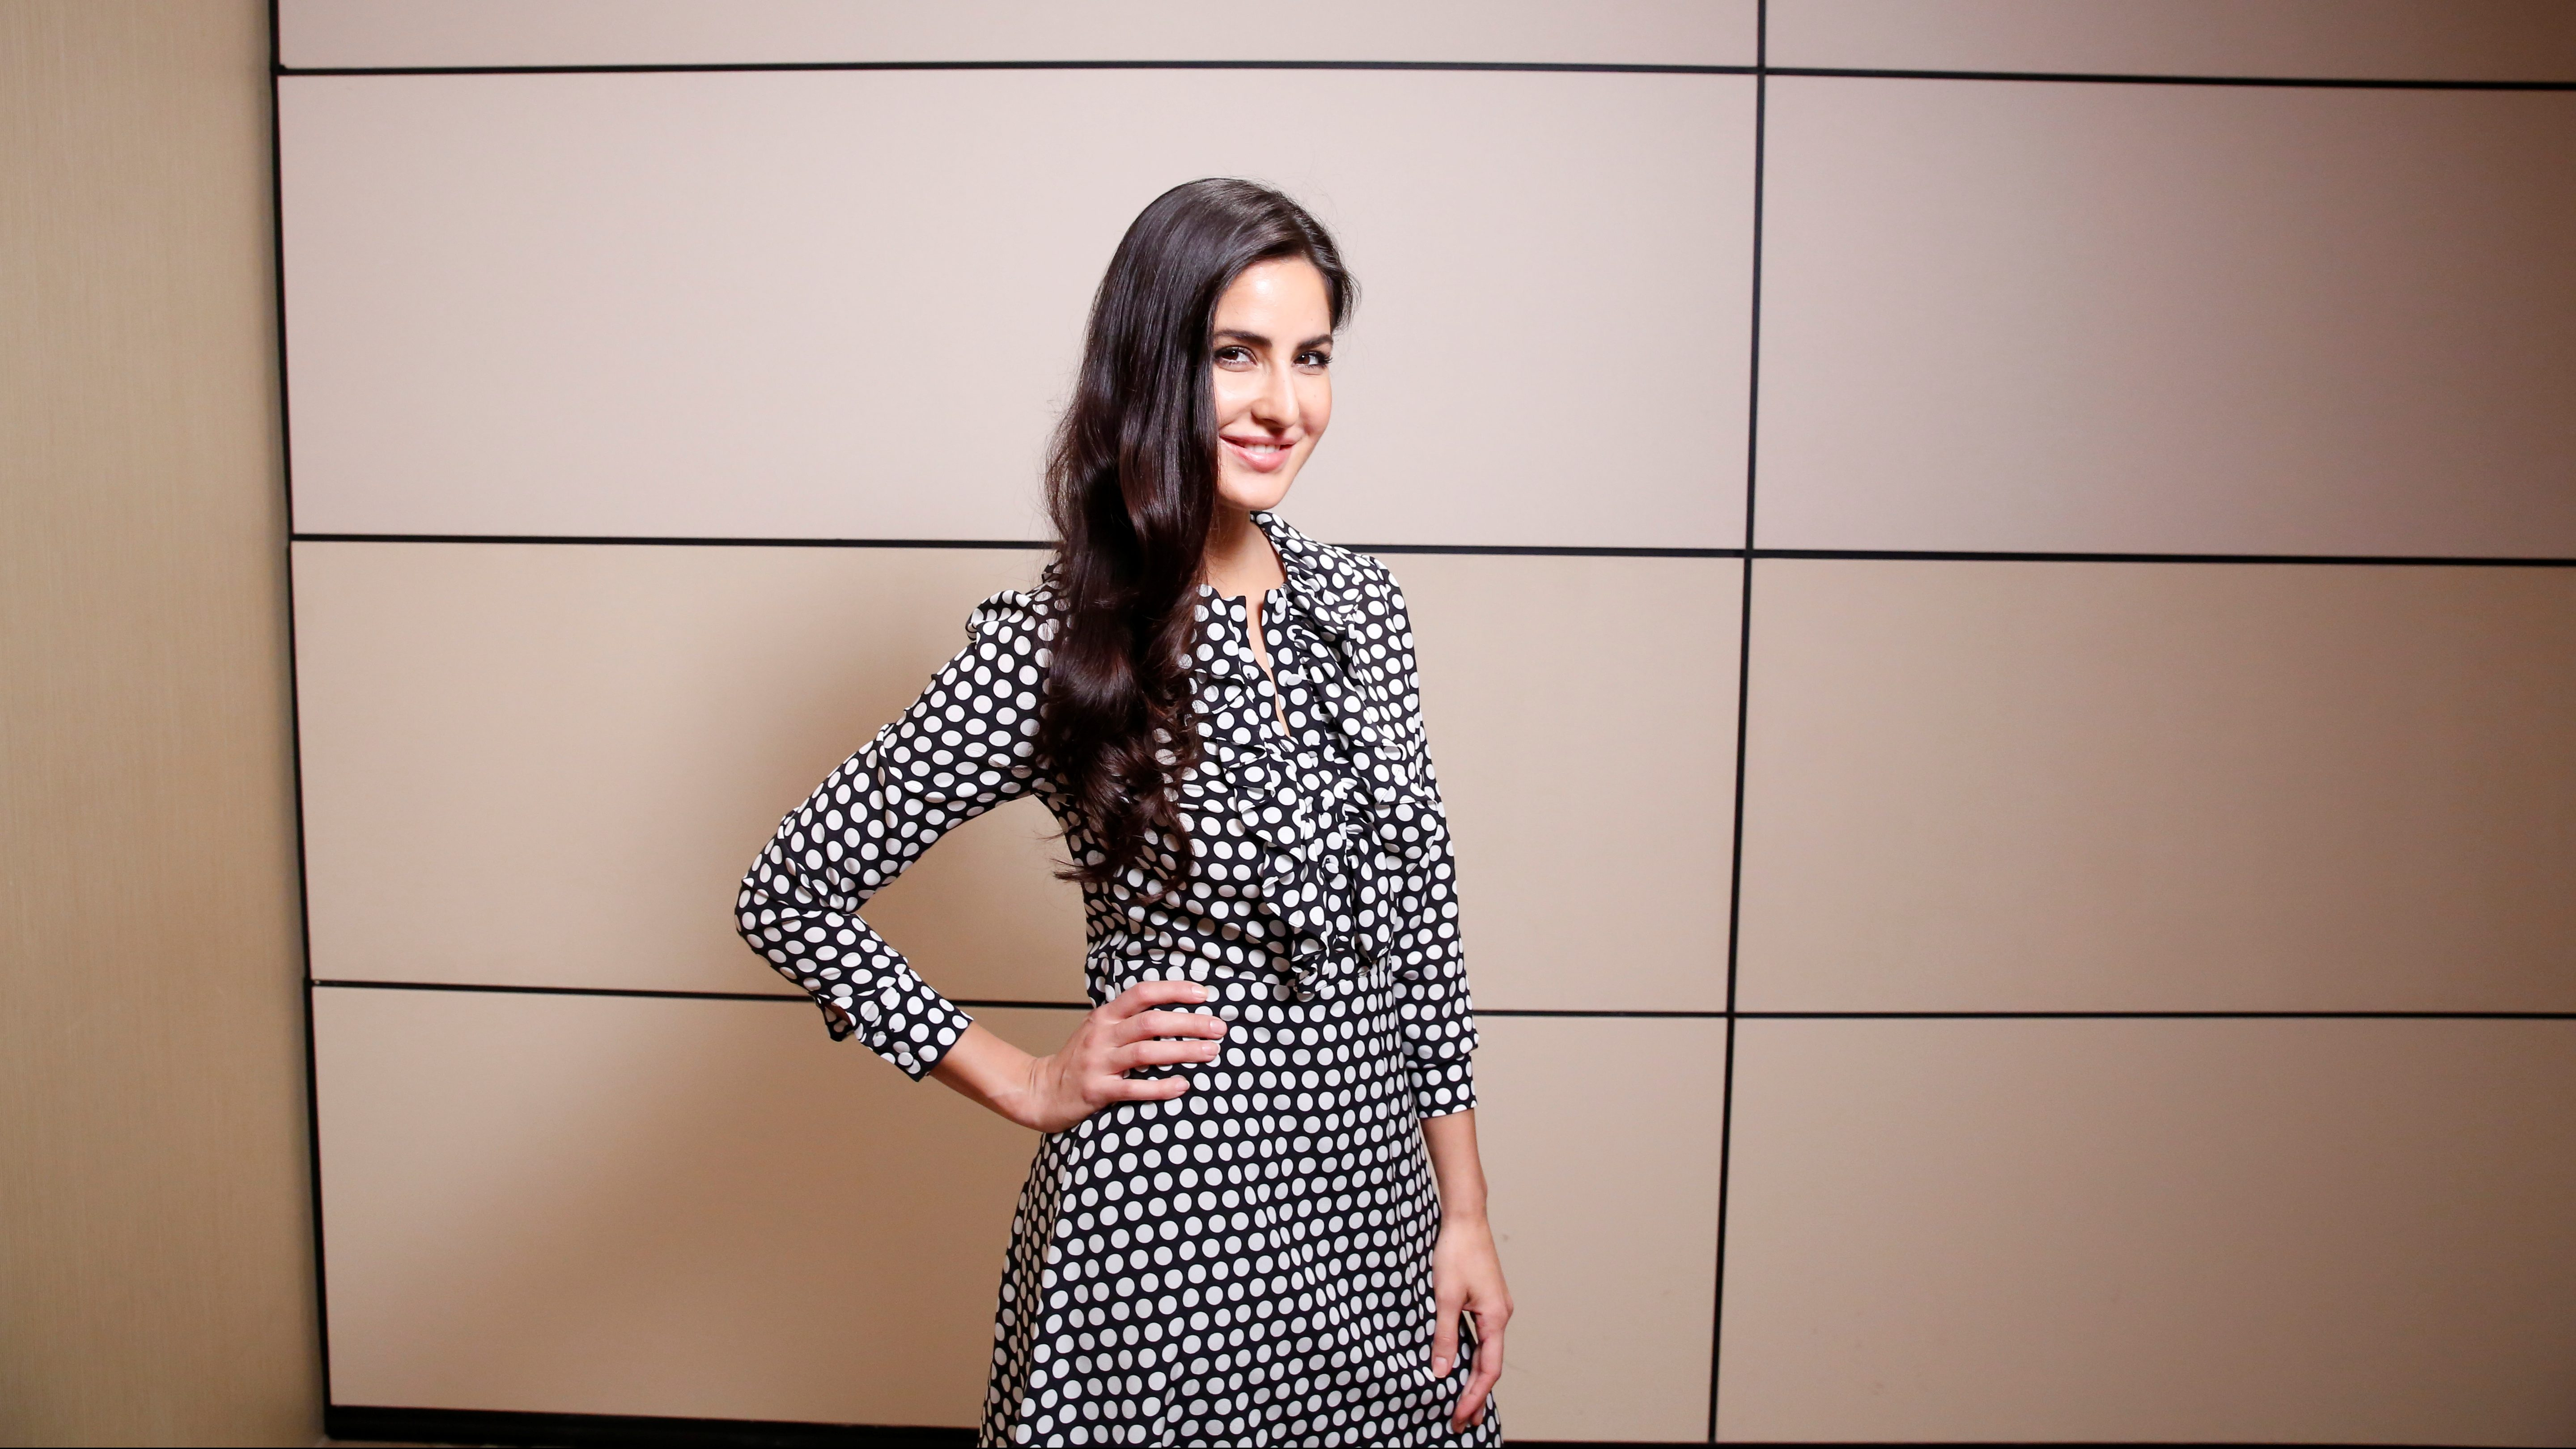 Bollywood film star Katrina Kaif poses for a portrait while promoting the film